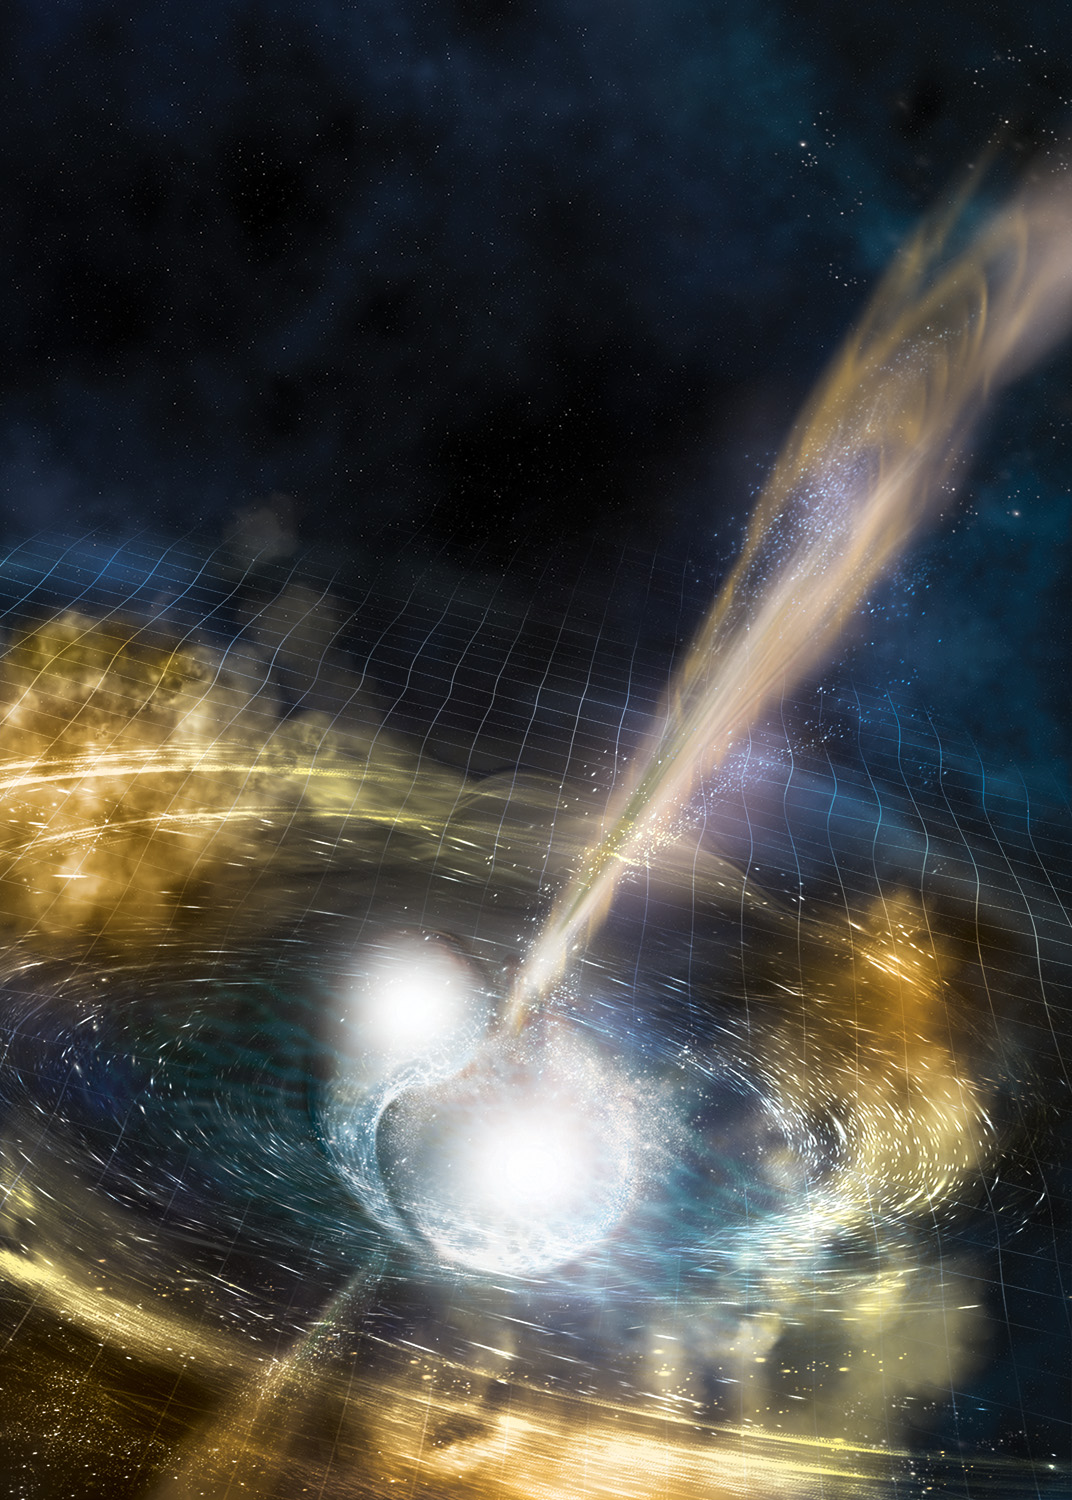 Artist's rendering of two merging neutron stars. The rippling space-time grid represents gravitational waves that travel out from the collision, while the narrow beams show the bursts of gamma rays that are shot out just seconds after the gravitational waves. Swirling clouds of material ejected from the merging stars glow with visible and other wavelengths of light. (Image credit: NSF/LIGO/Sonoma State University/A. Simonnet)